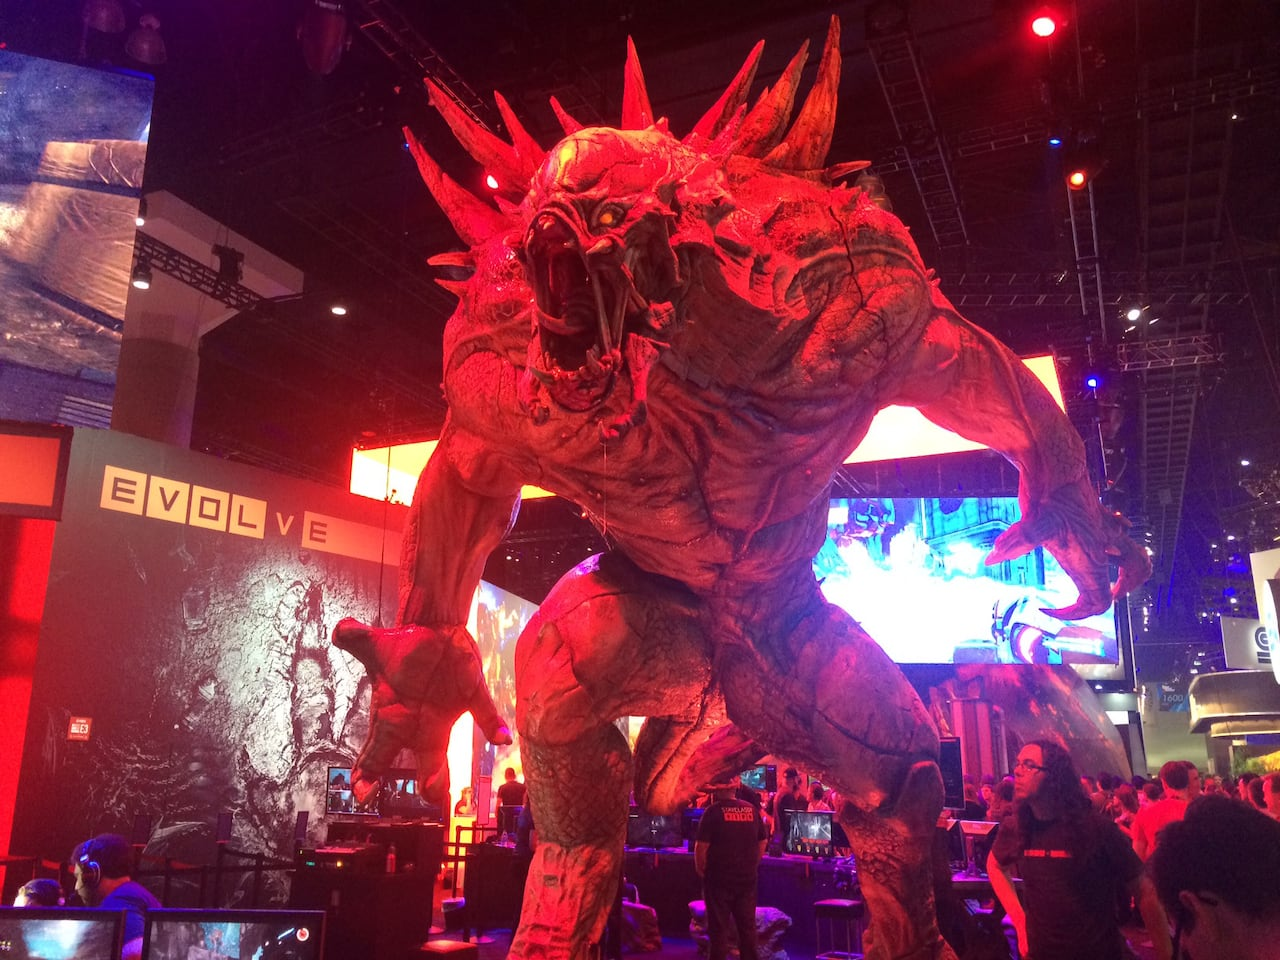 E3 highlights blockbuster games, surge of console interest | CBC News